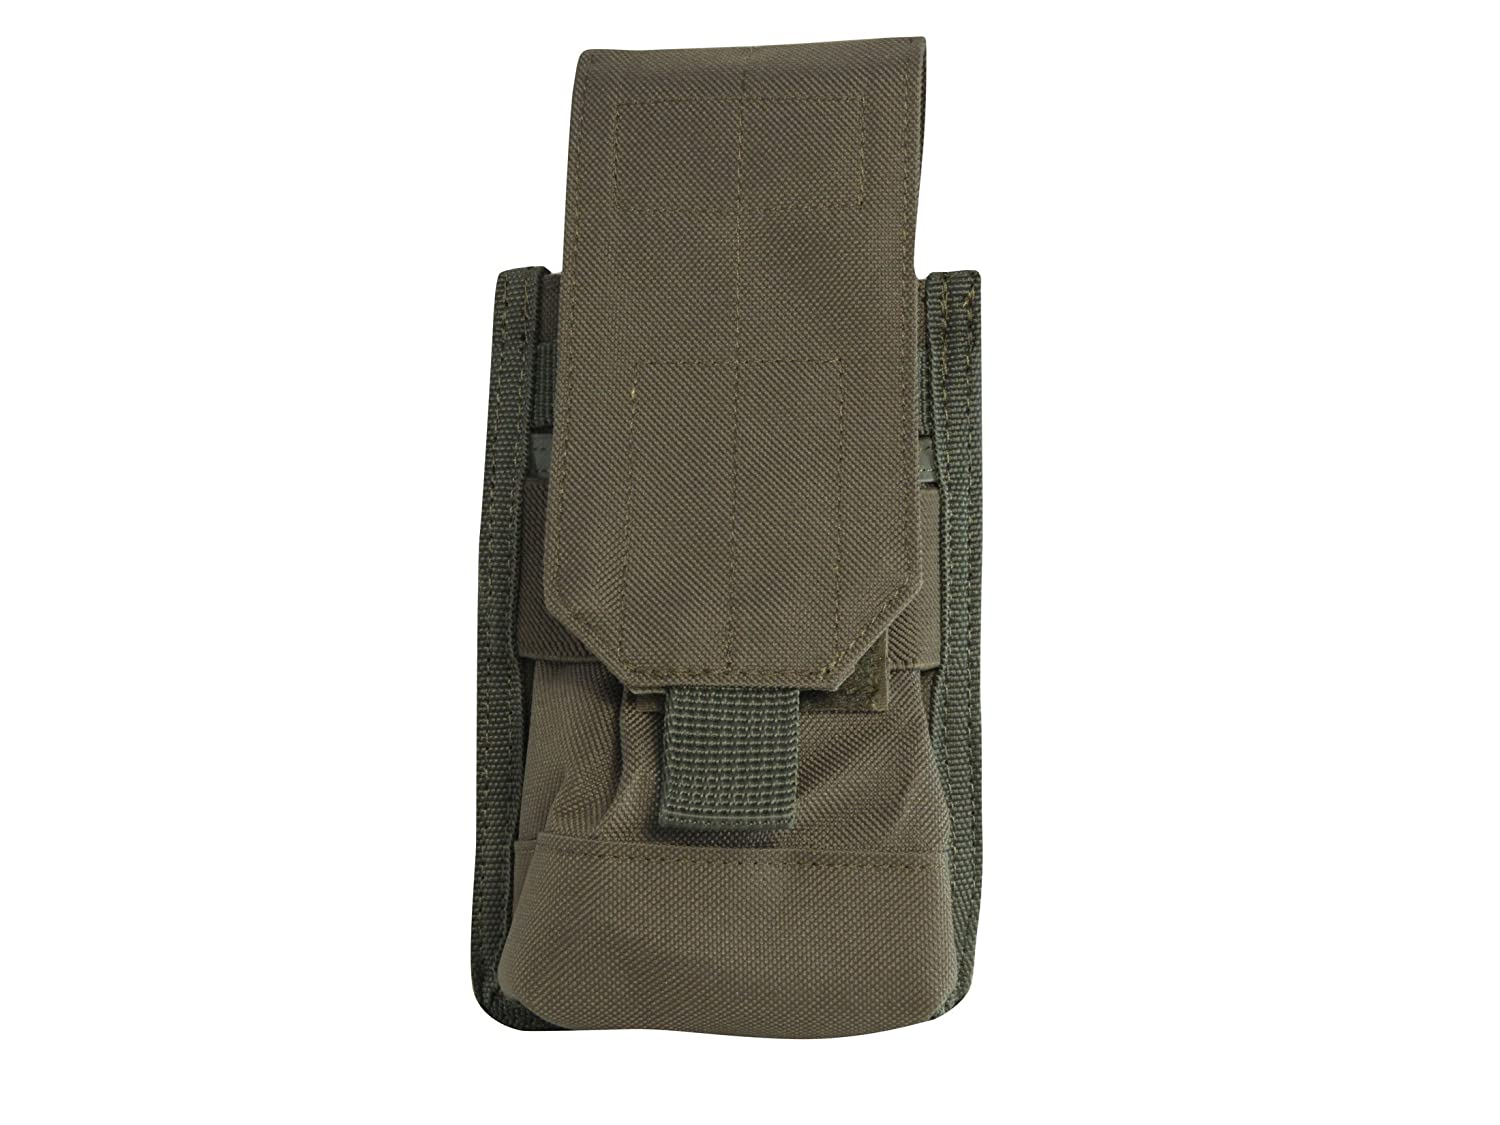 Amazon.com   MidwayUSA MOLLE Magazine Pouch AR-15 and AK-47 Rifle   Sports    Outdoors 9fc5e25de3